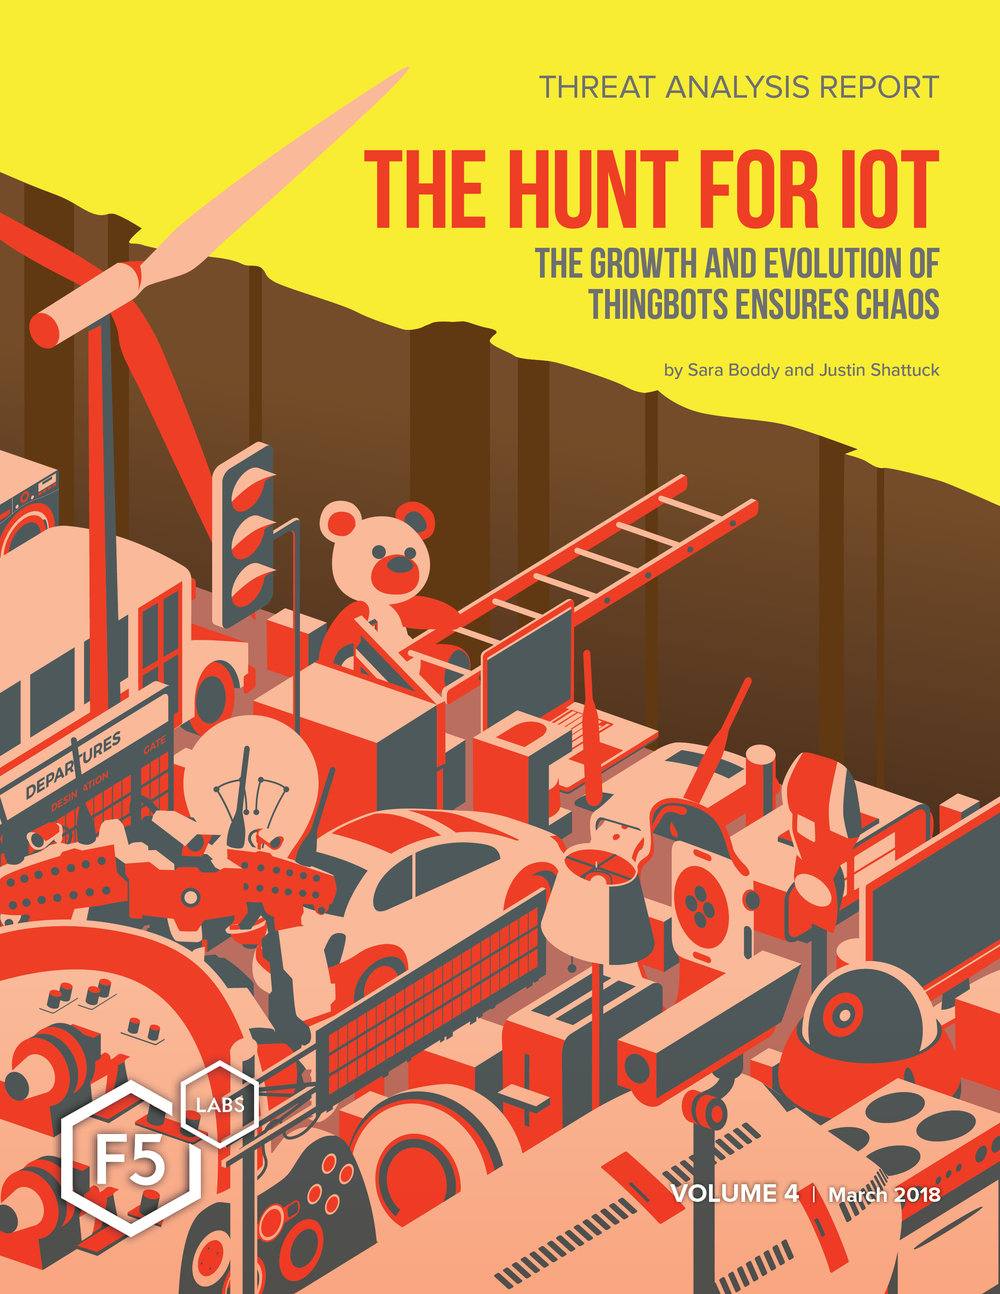 F5 IoT Report Cover: The Growth and Evolution of Thingbots Ensures Chaos